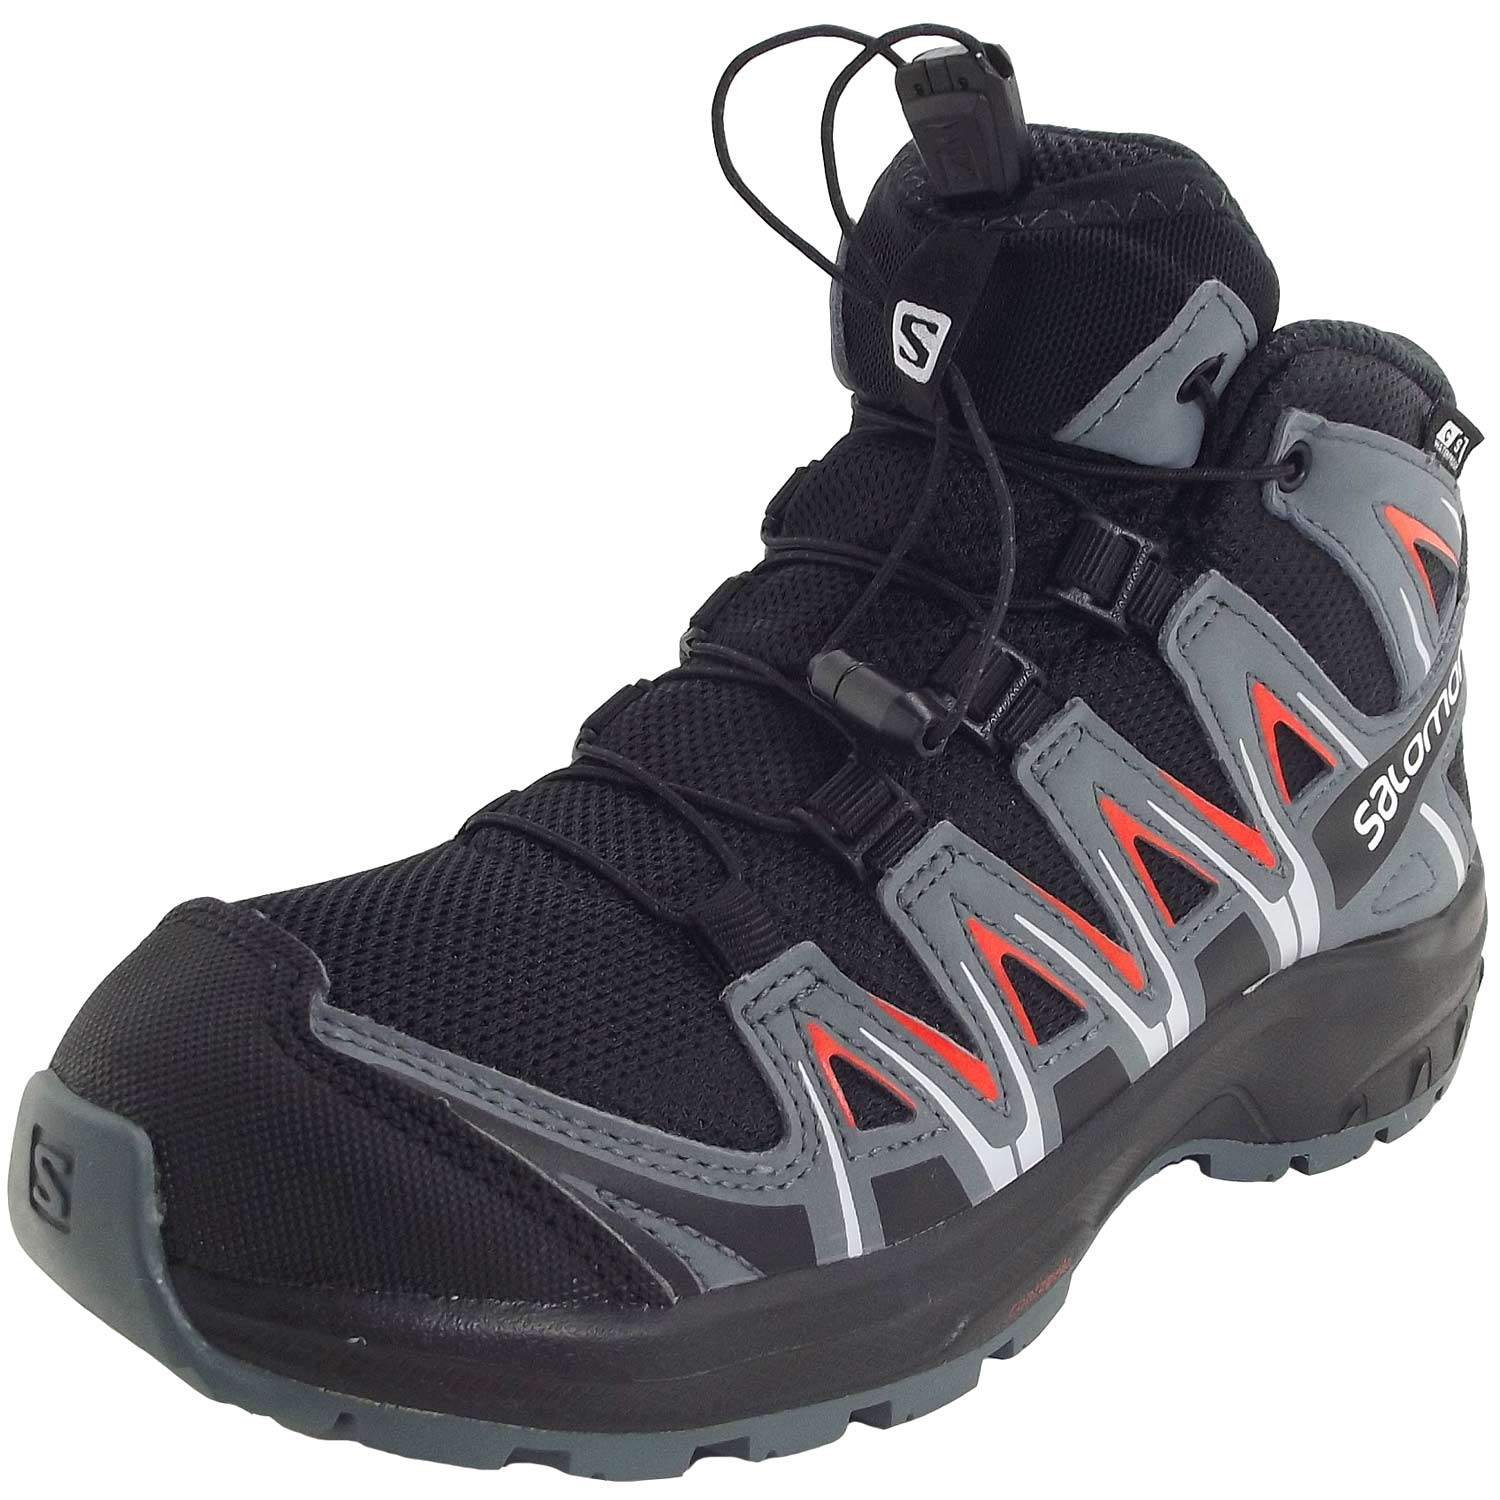 Salomon XA Pro 3D Mid CSWP J black/stormy weather/cherry tomato